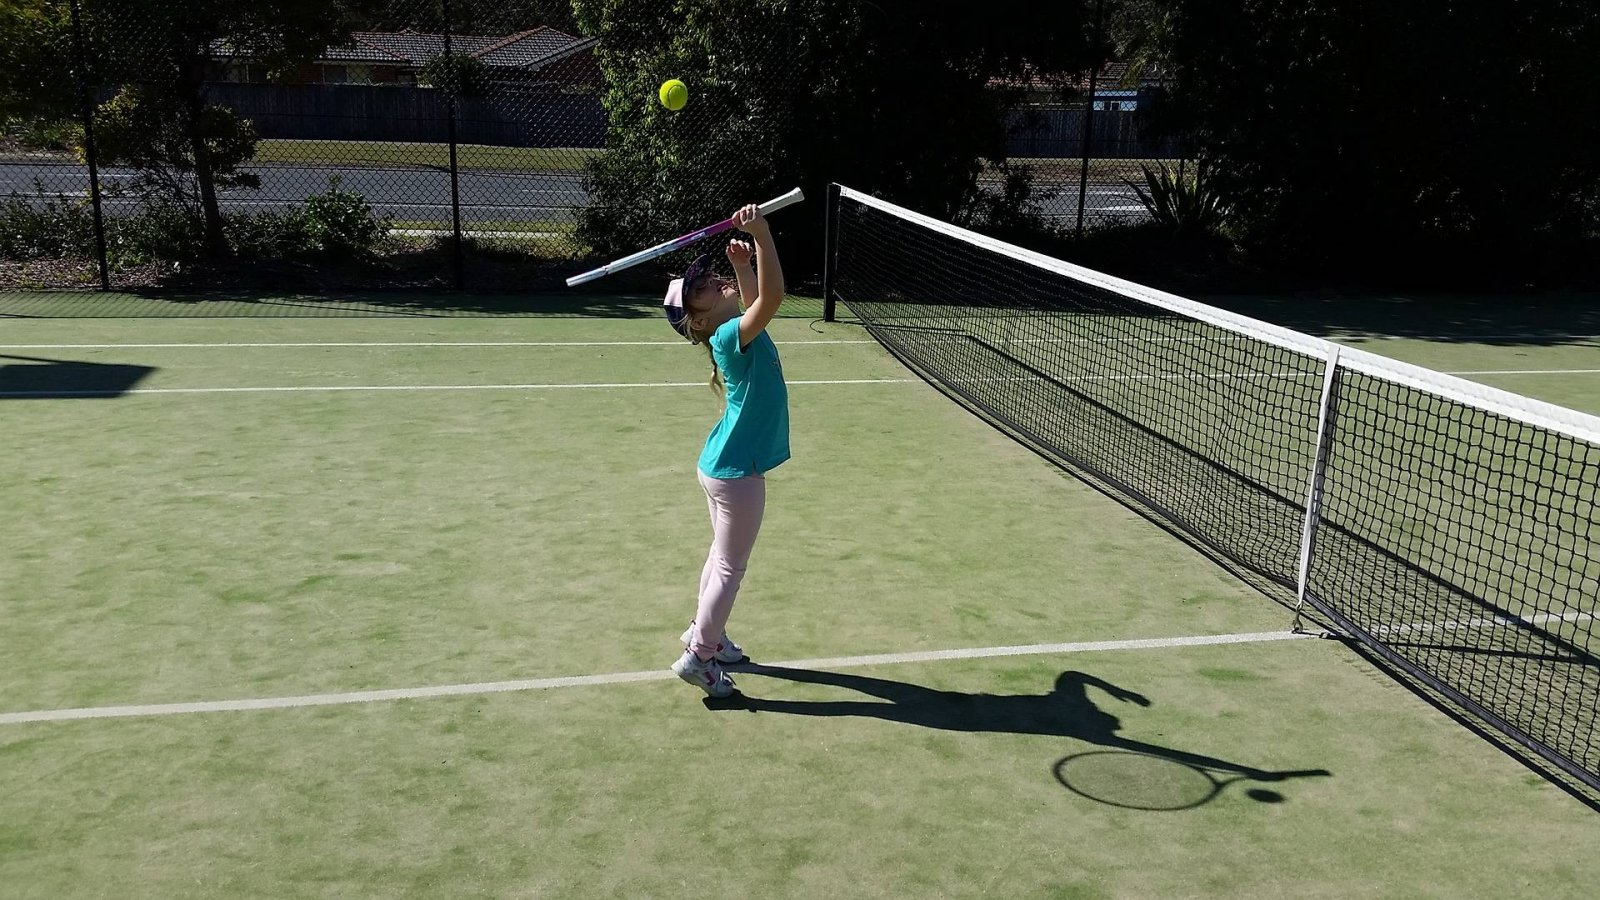 How you can get FREE Tennis lessons for your child plus a free Tennis Racket! #TennisForKids